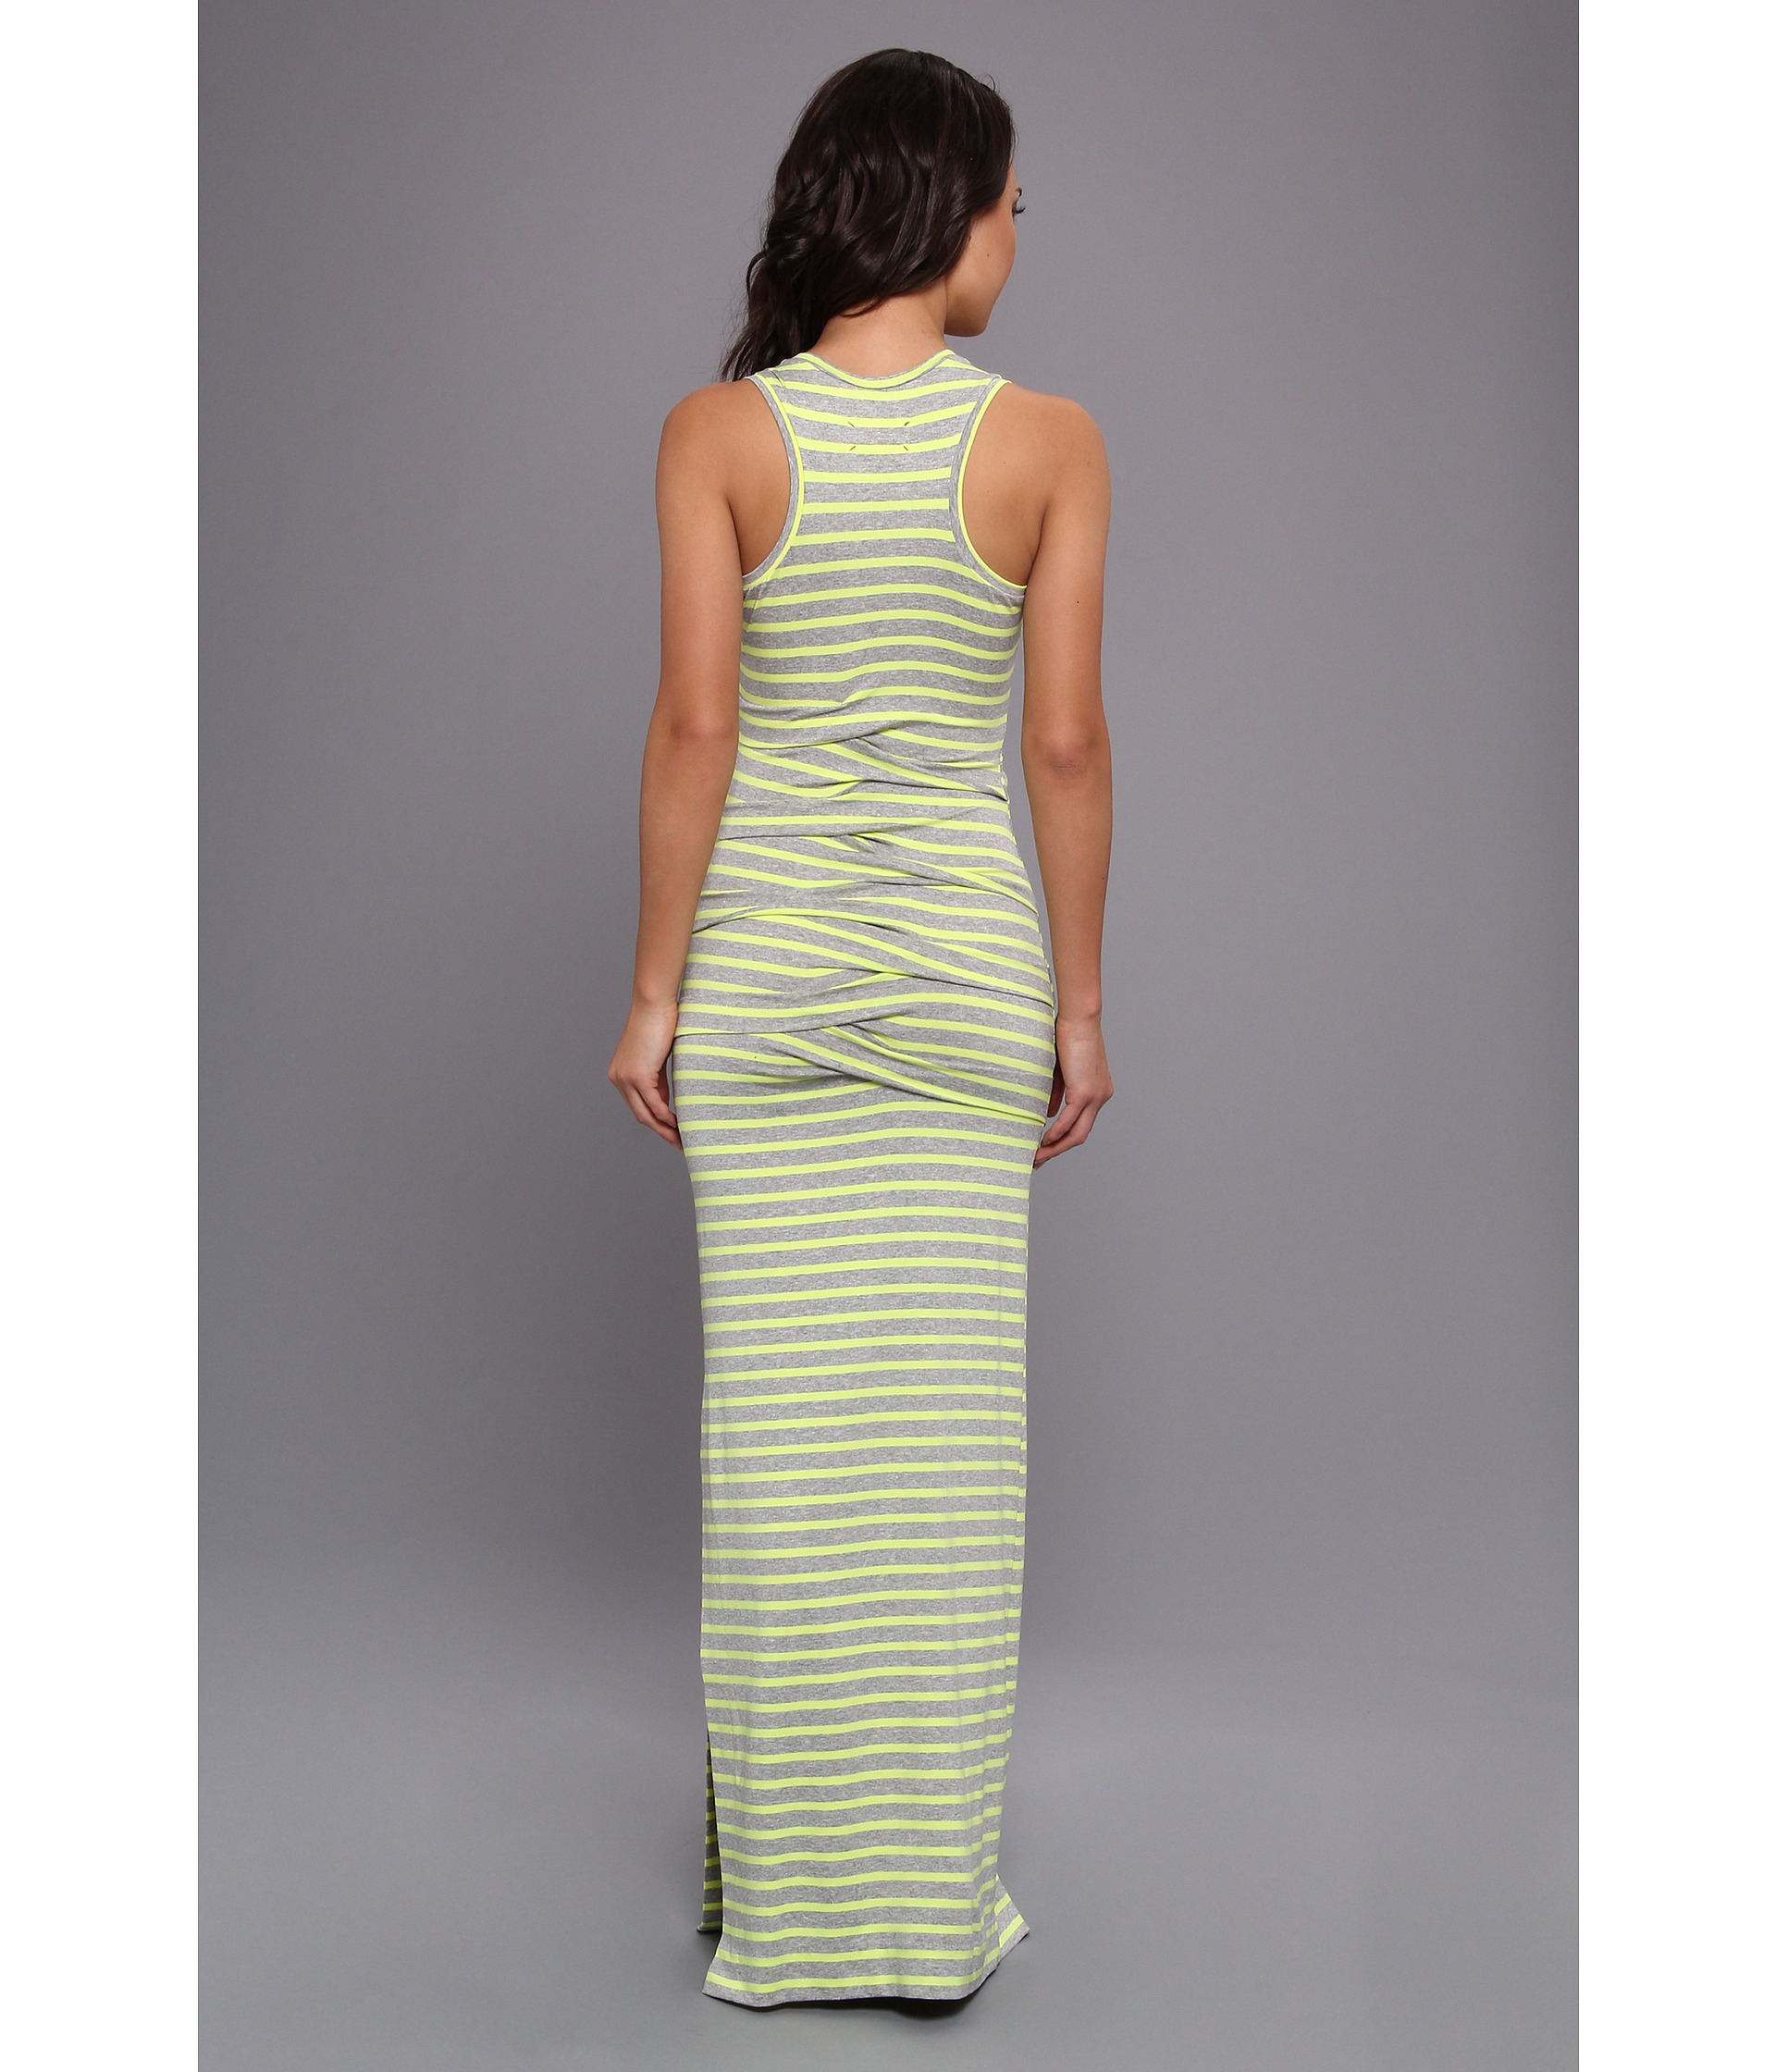 Nicole miller Maxi Tidal Wave Dress in Yellow | Lyst